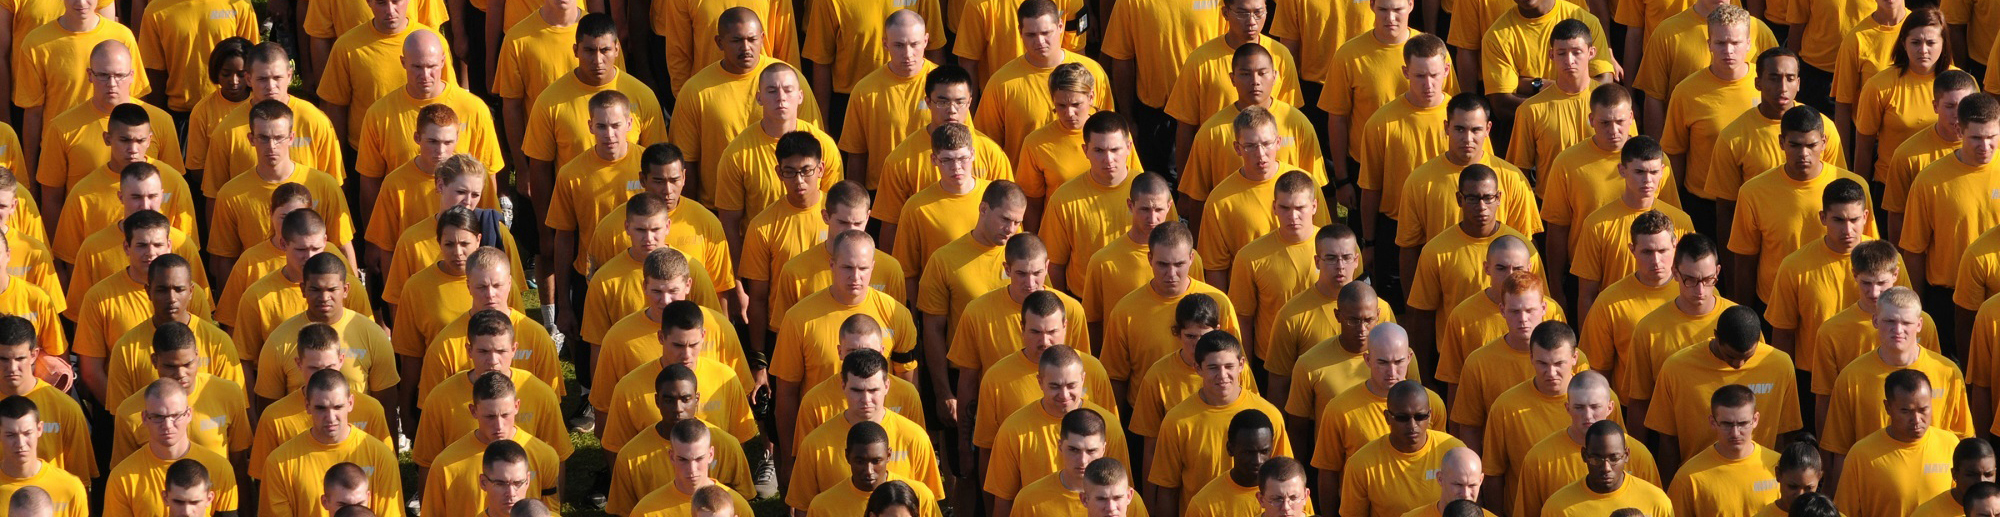 Group of men and women wearing yellow shirts standing shoulder to sholder in tight rows.